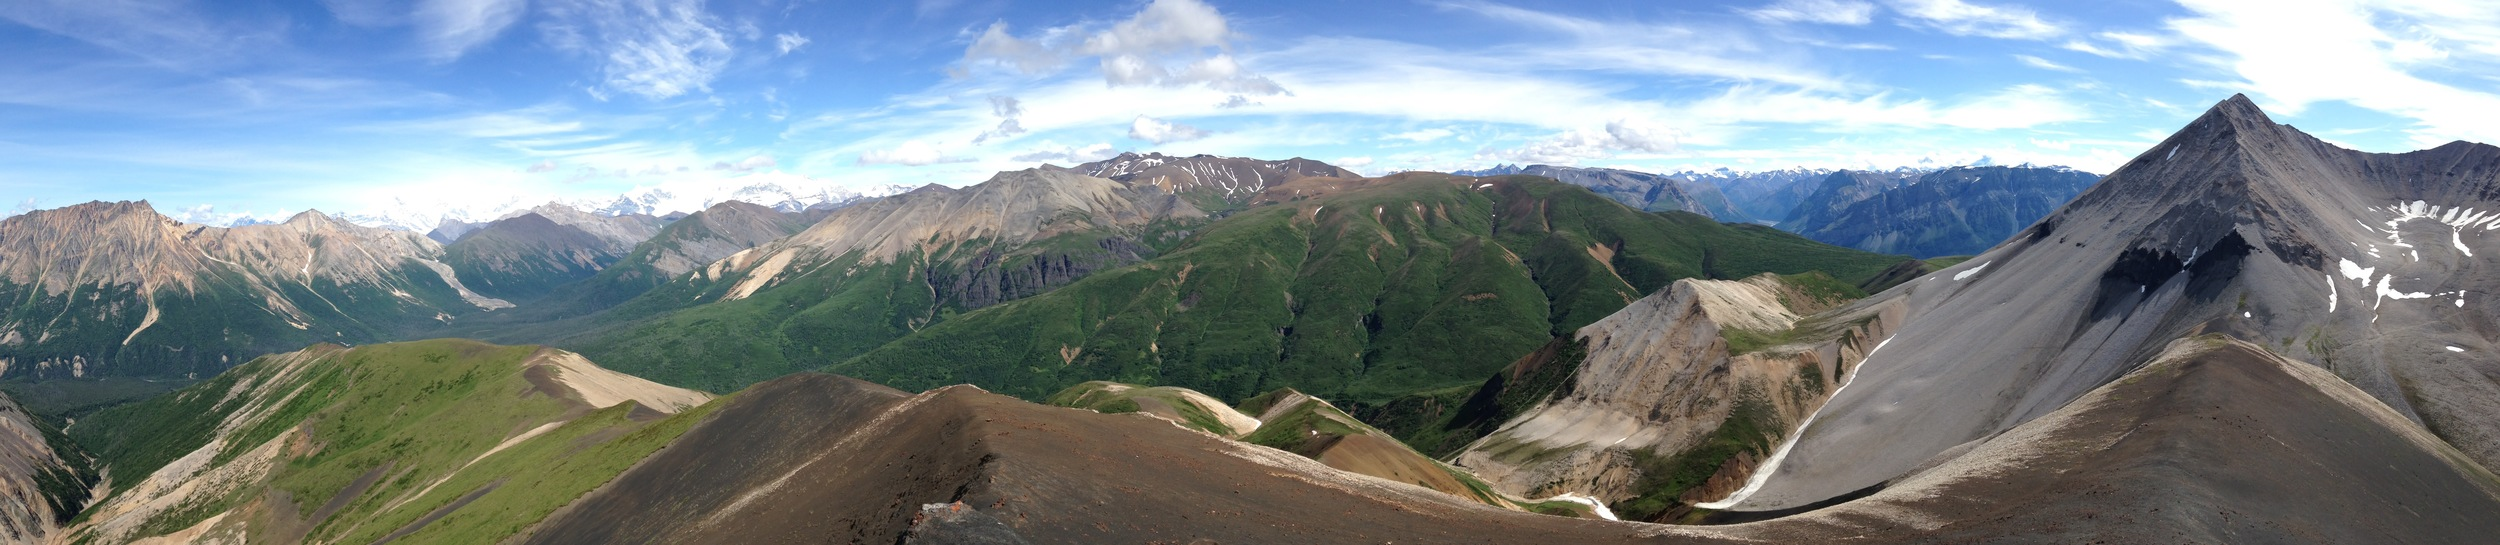 Maybe the best panorama I took while in Alaska. Wrangell St. Elias National Park near Nikolai Pass.